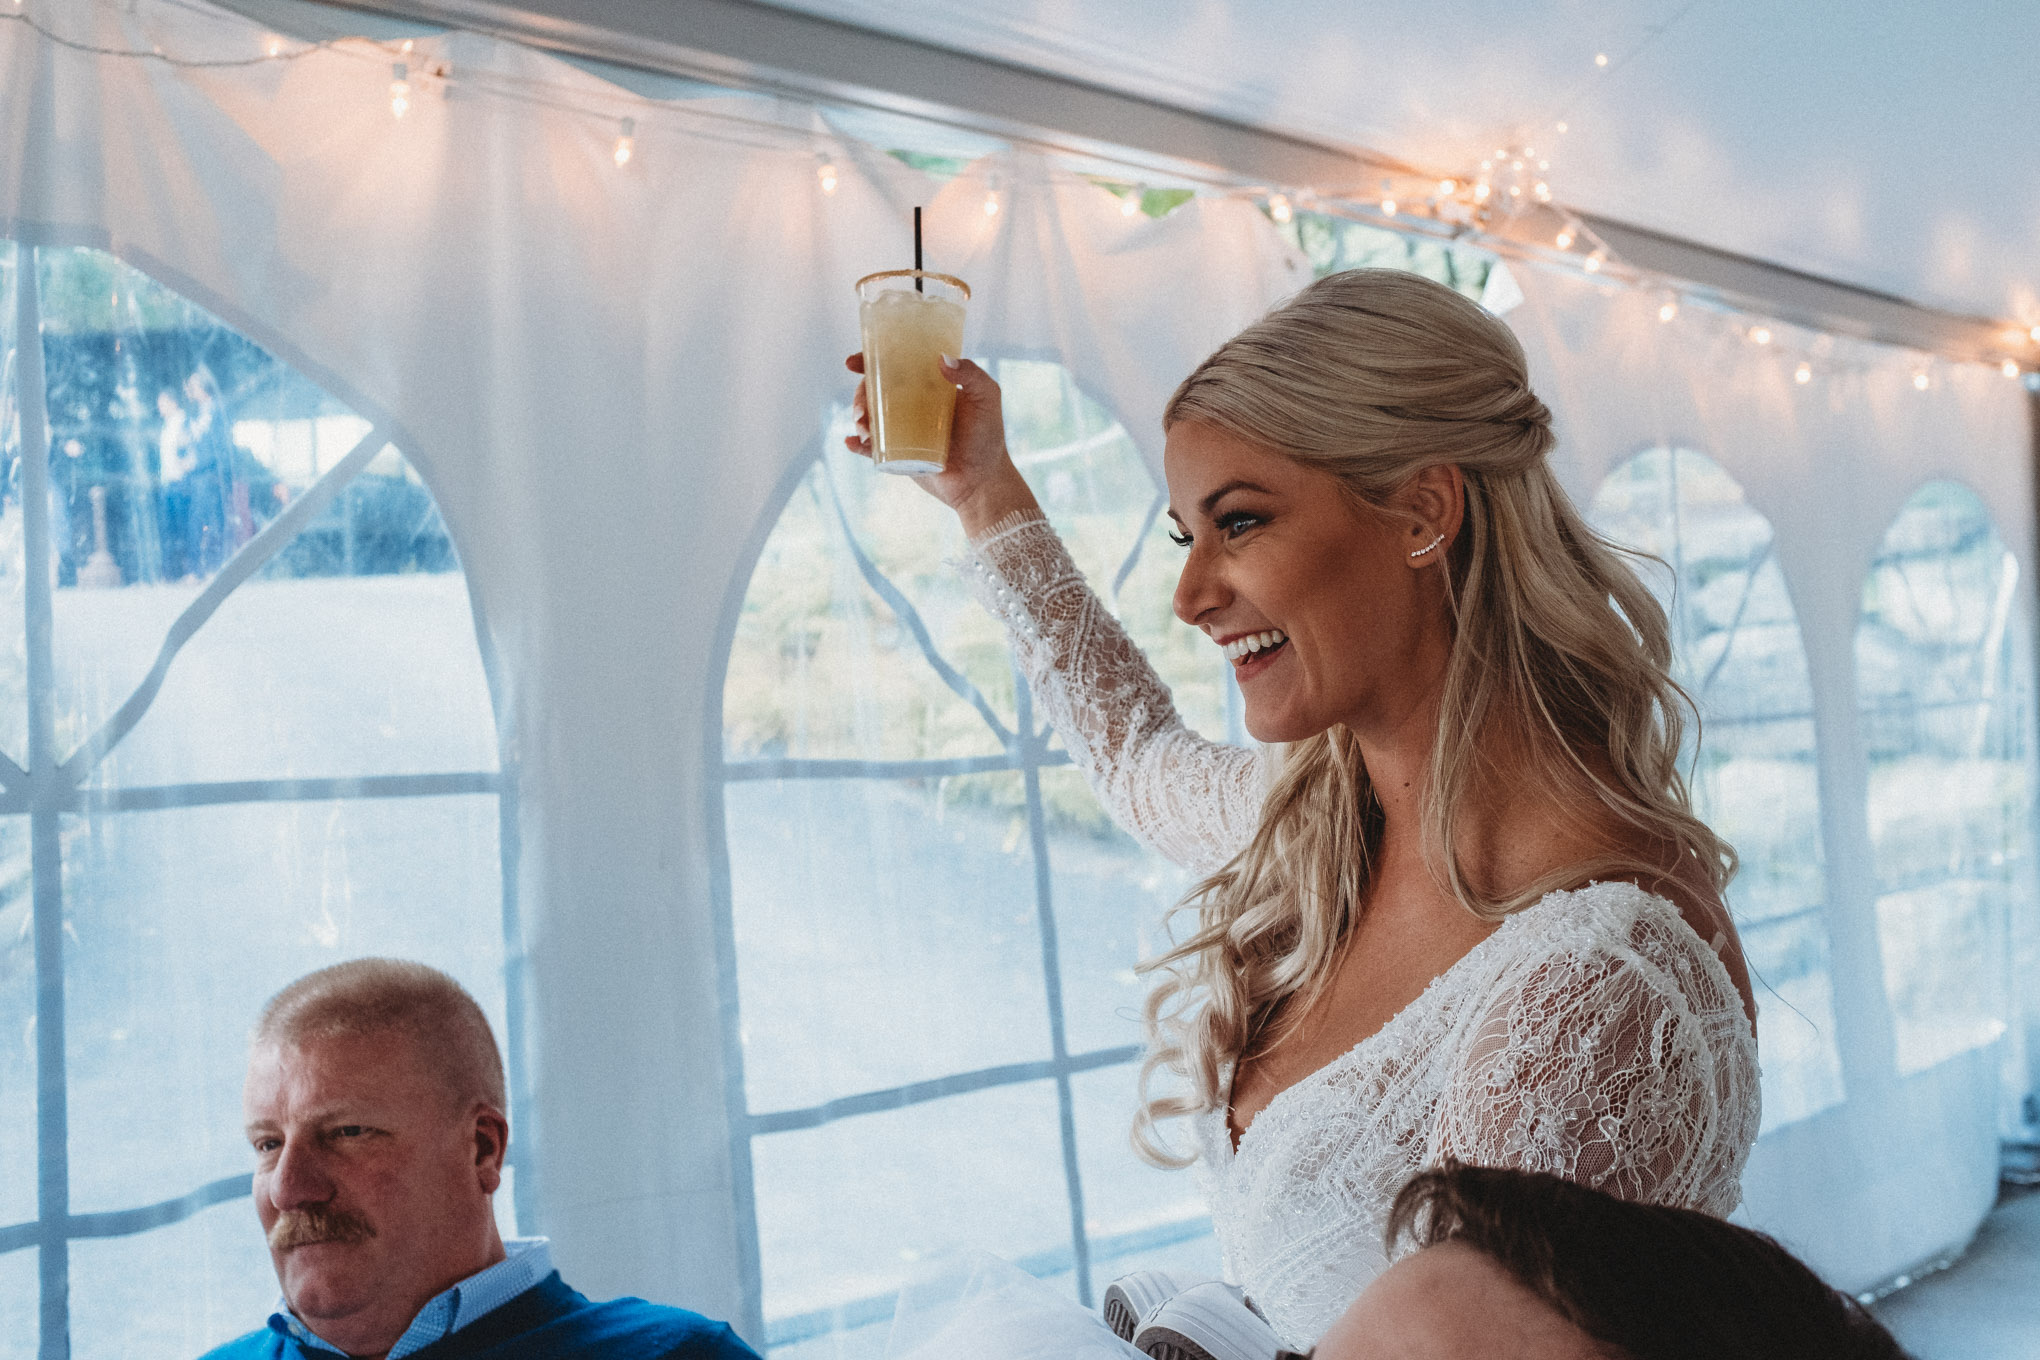 Bride Jodi Hogan comes over to say hi and raises a glass of spiked cider.